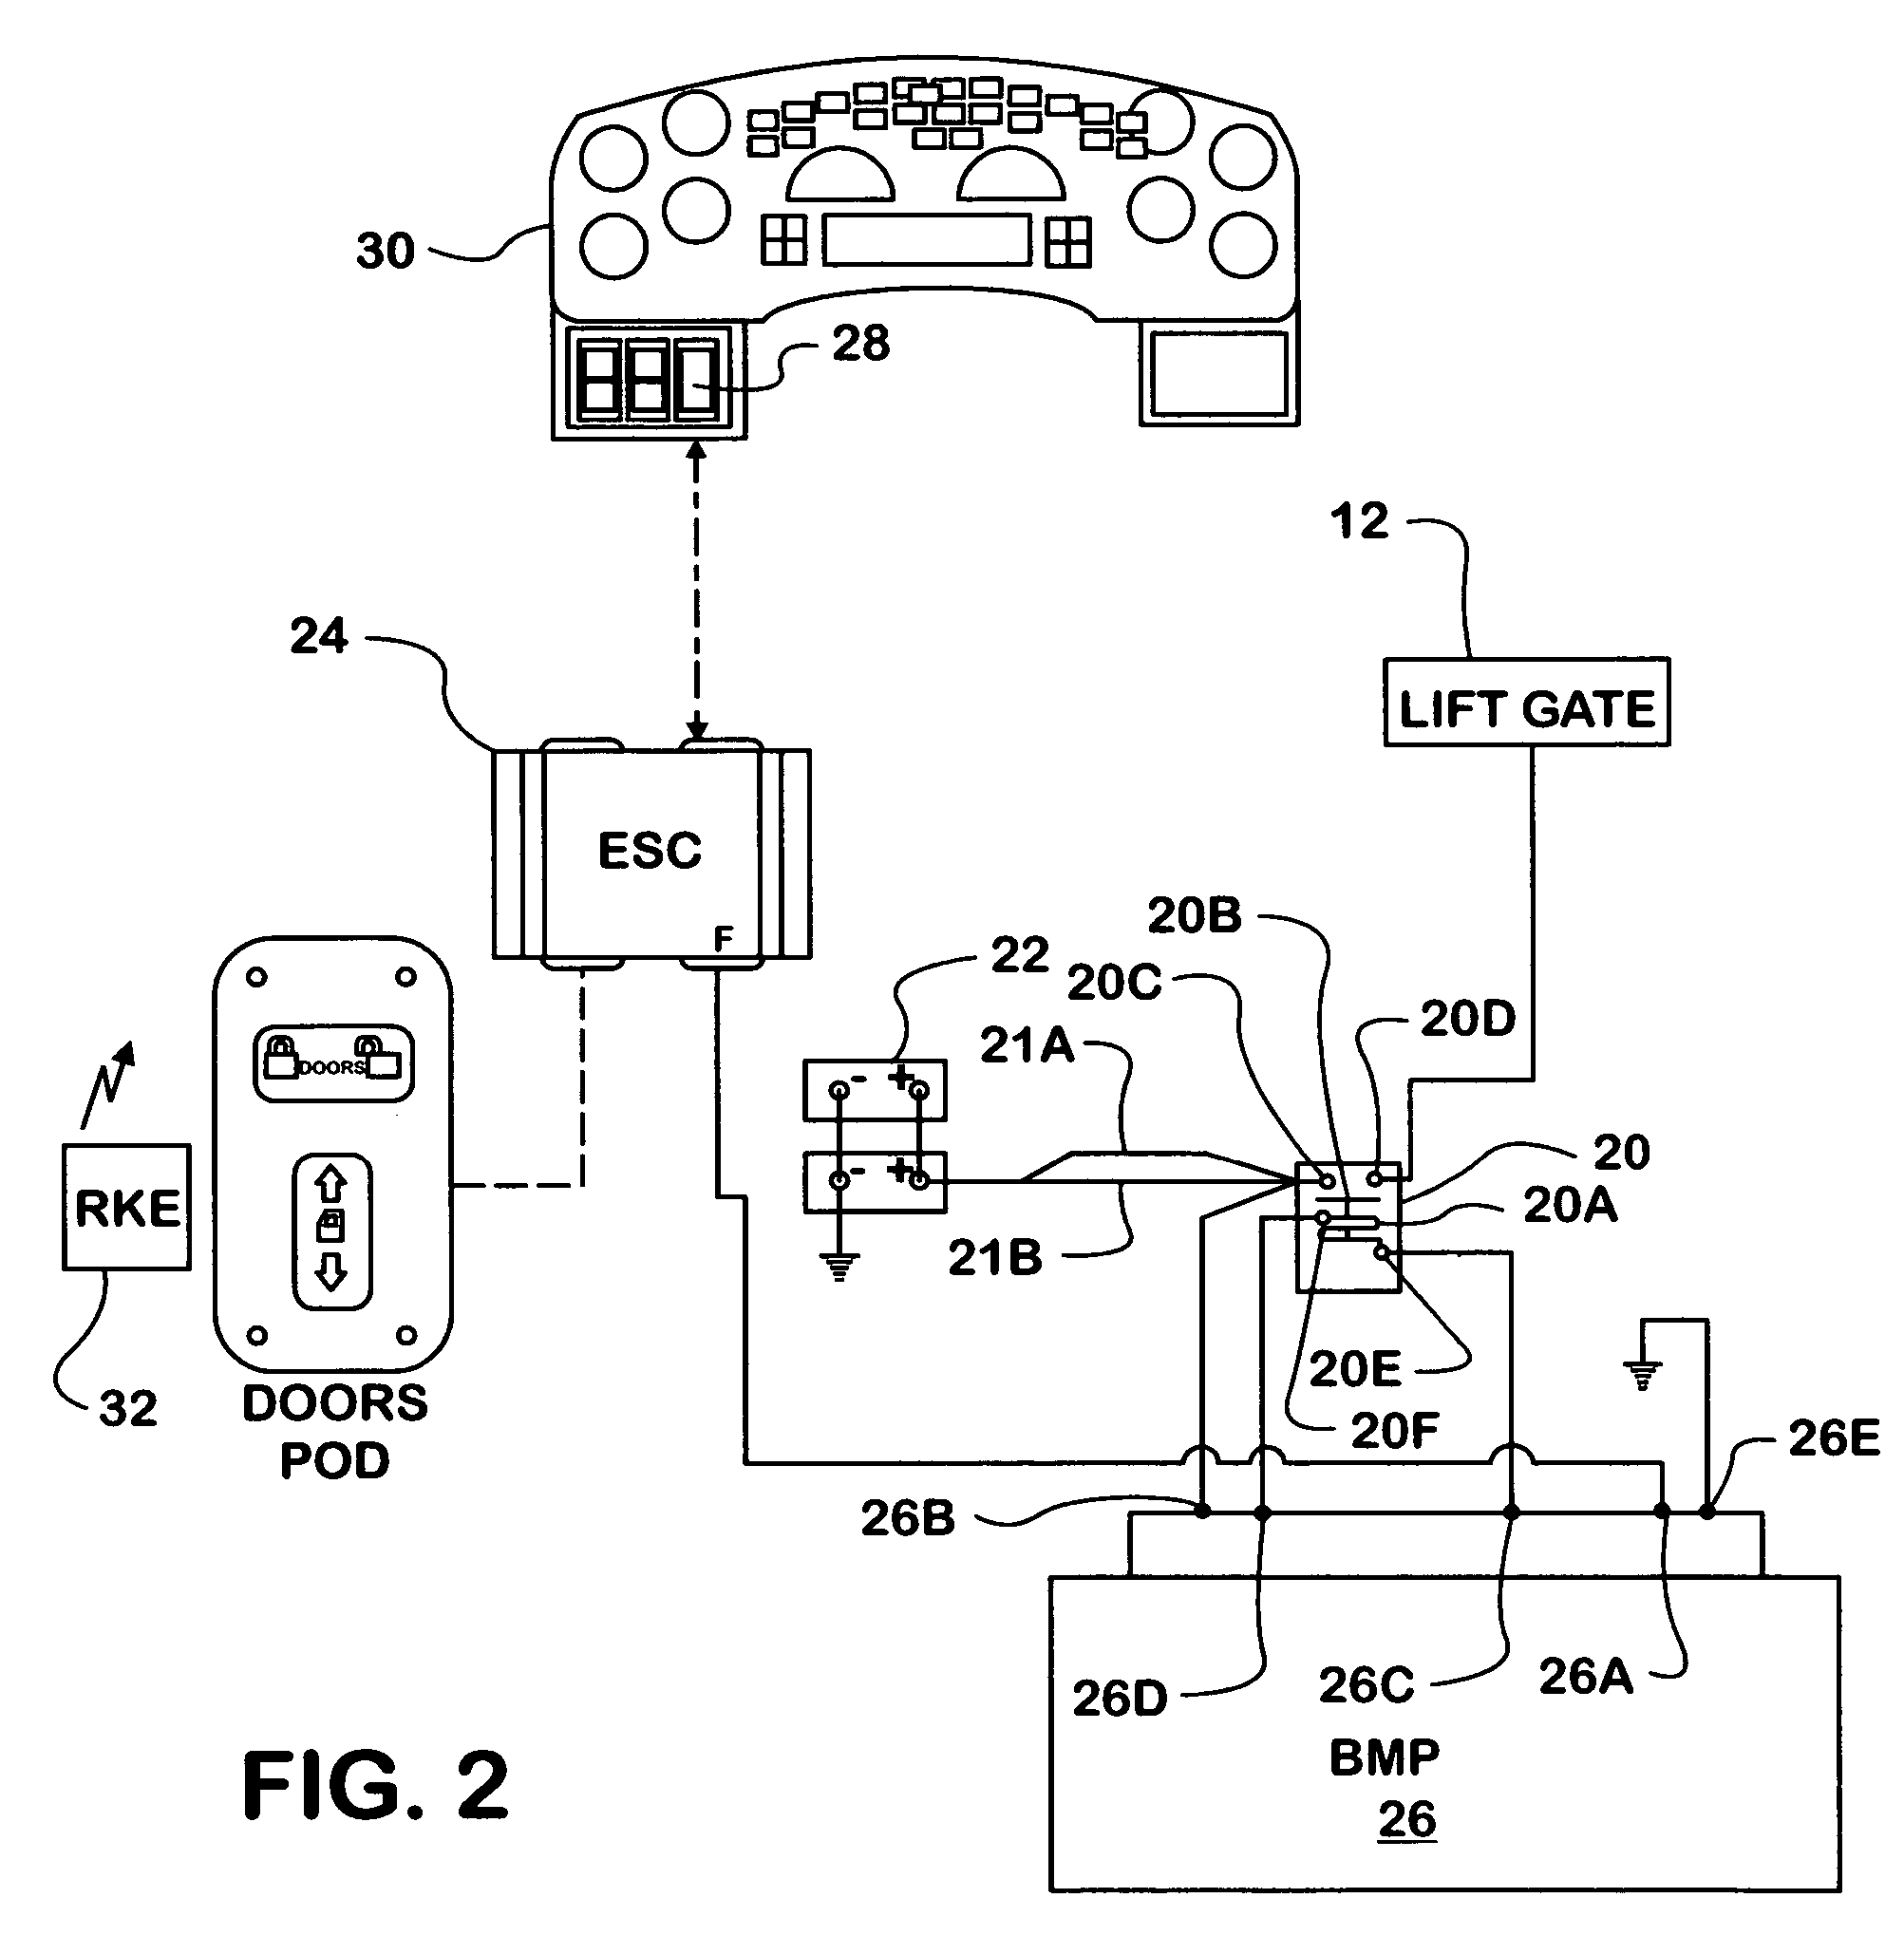 patent us7429804 - lift gate power control system